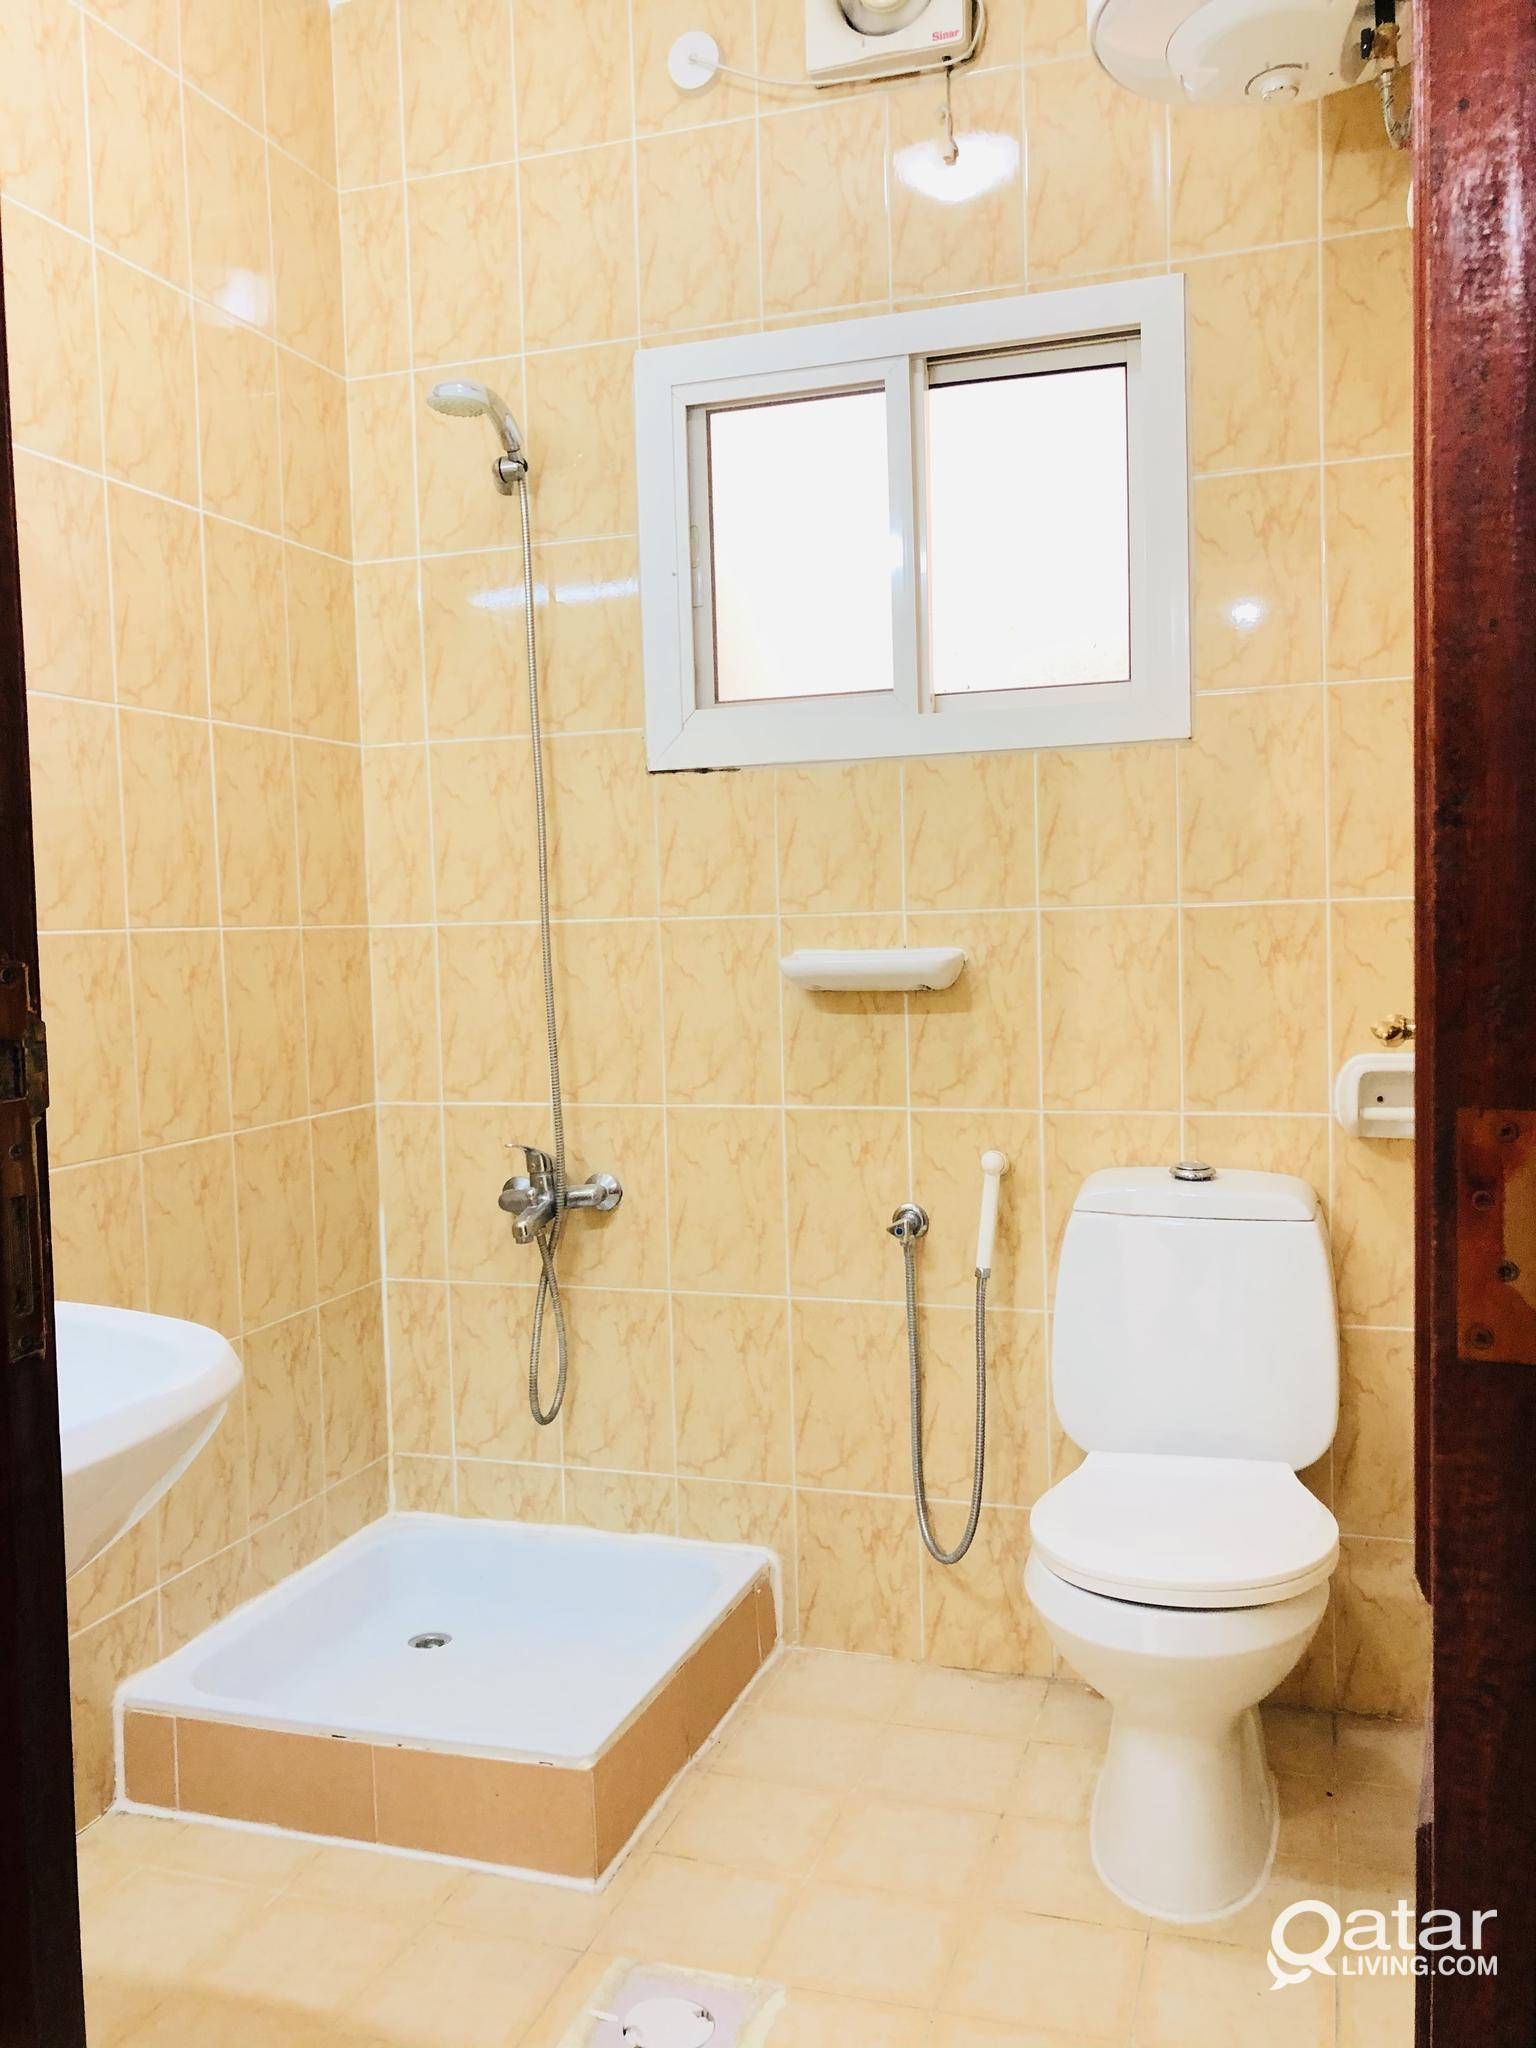 2 BEDROOMS APARTMENTS AVAILABLE IN MANSOURA NEAR M